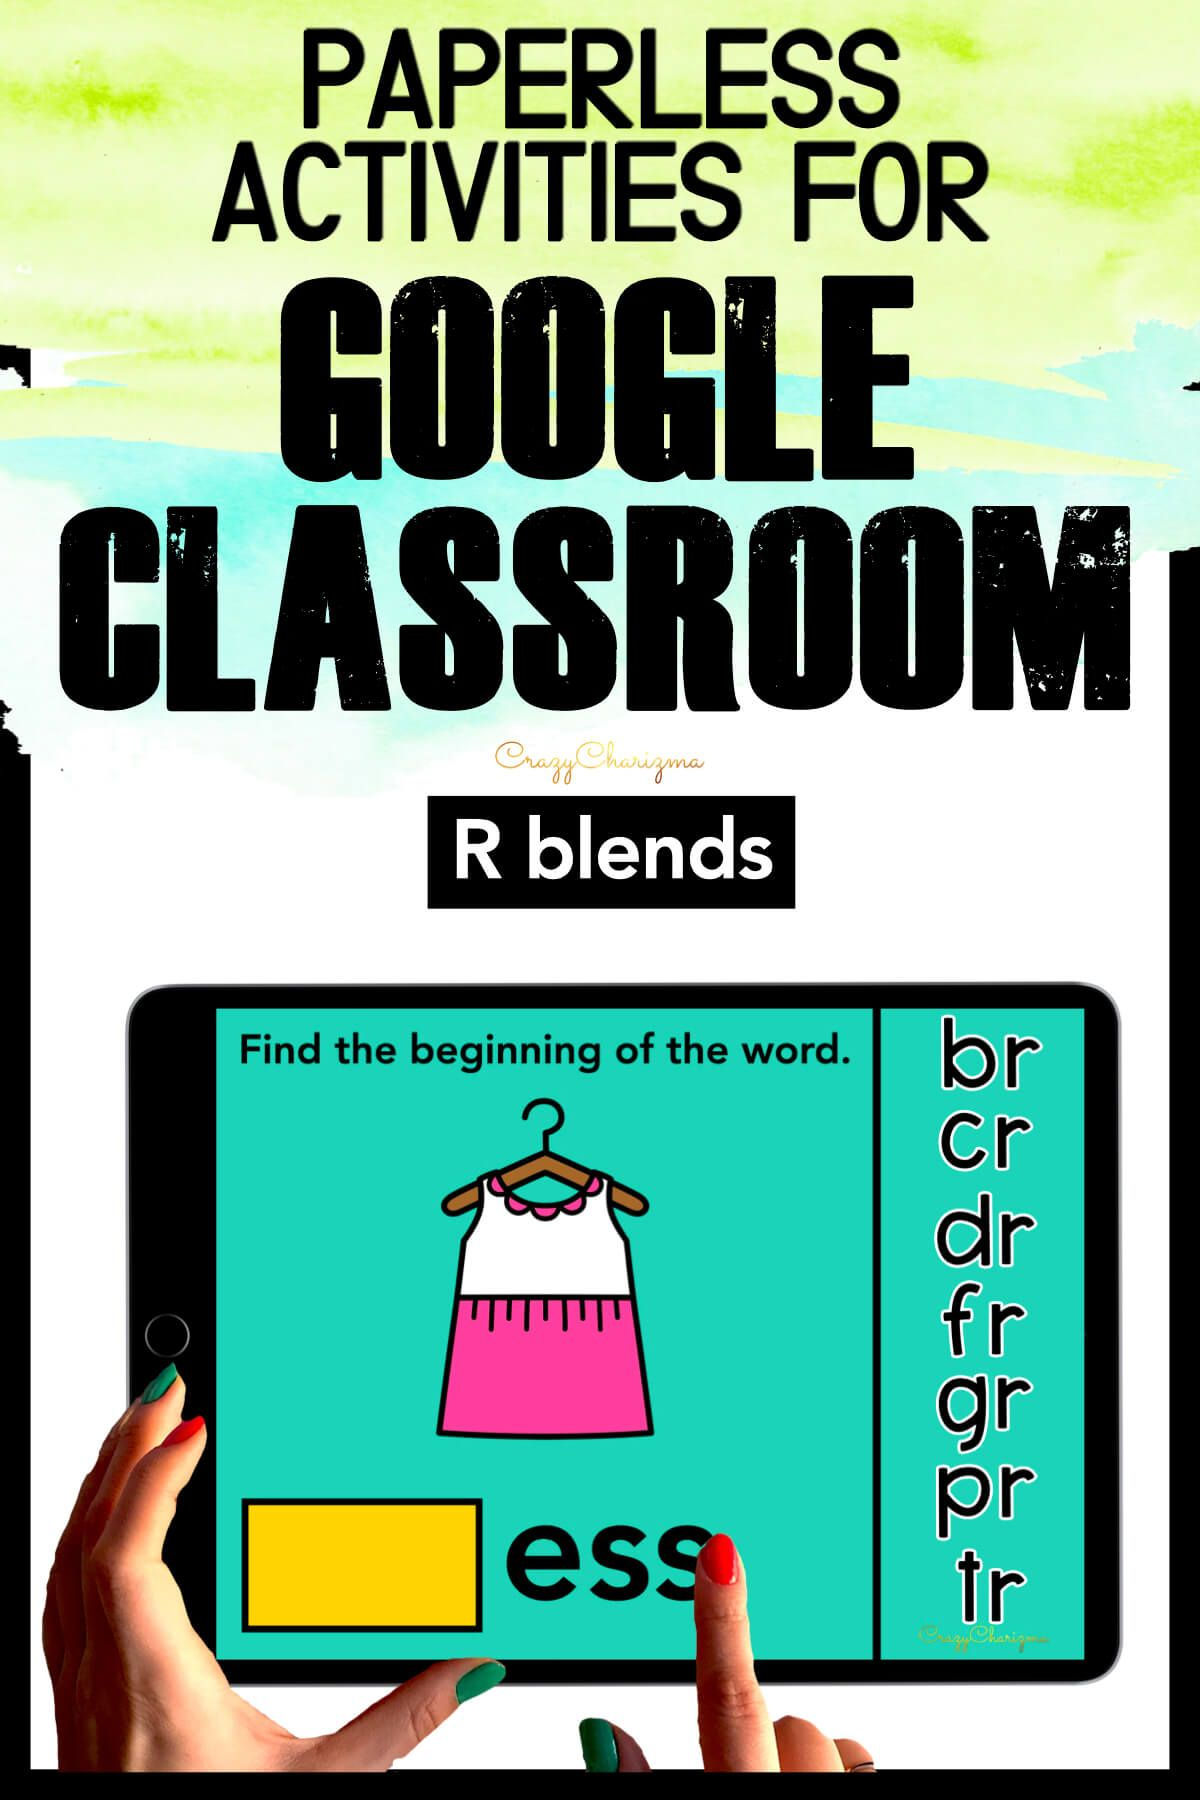 Need to practice beginning R BLENDS in a fun way? Check out these interactive activities for Google Classroom. Kids will drag blends and build the word (images will help).